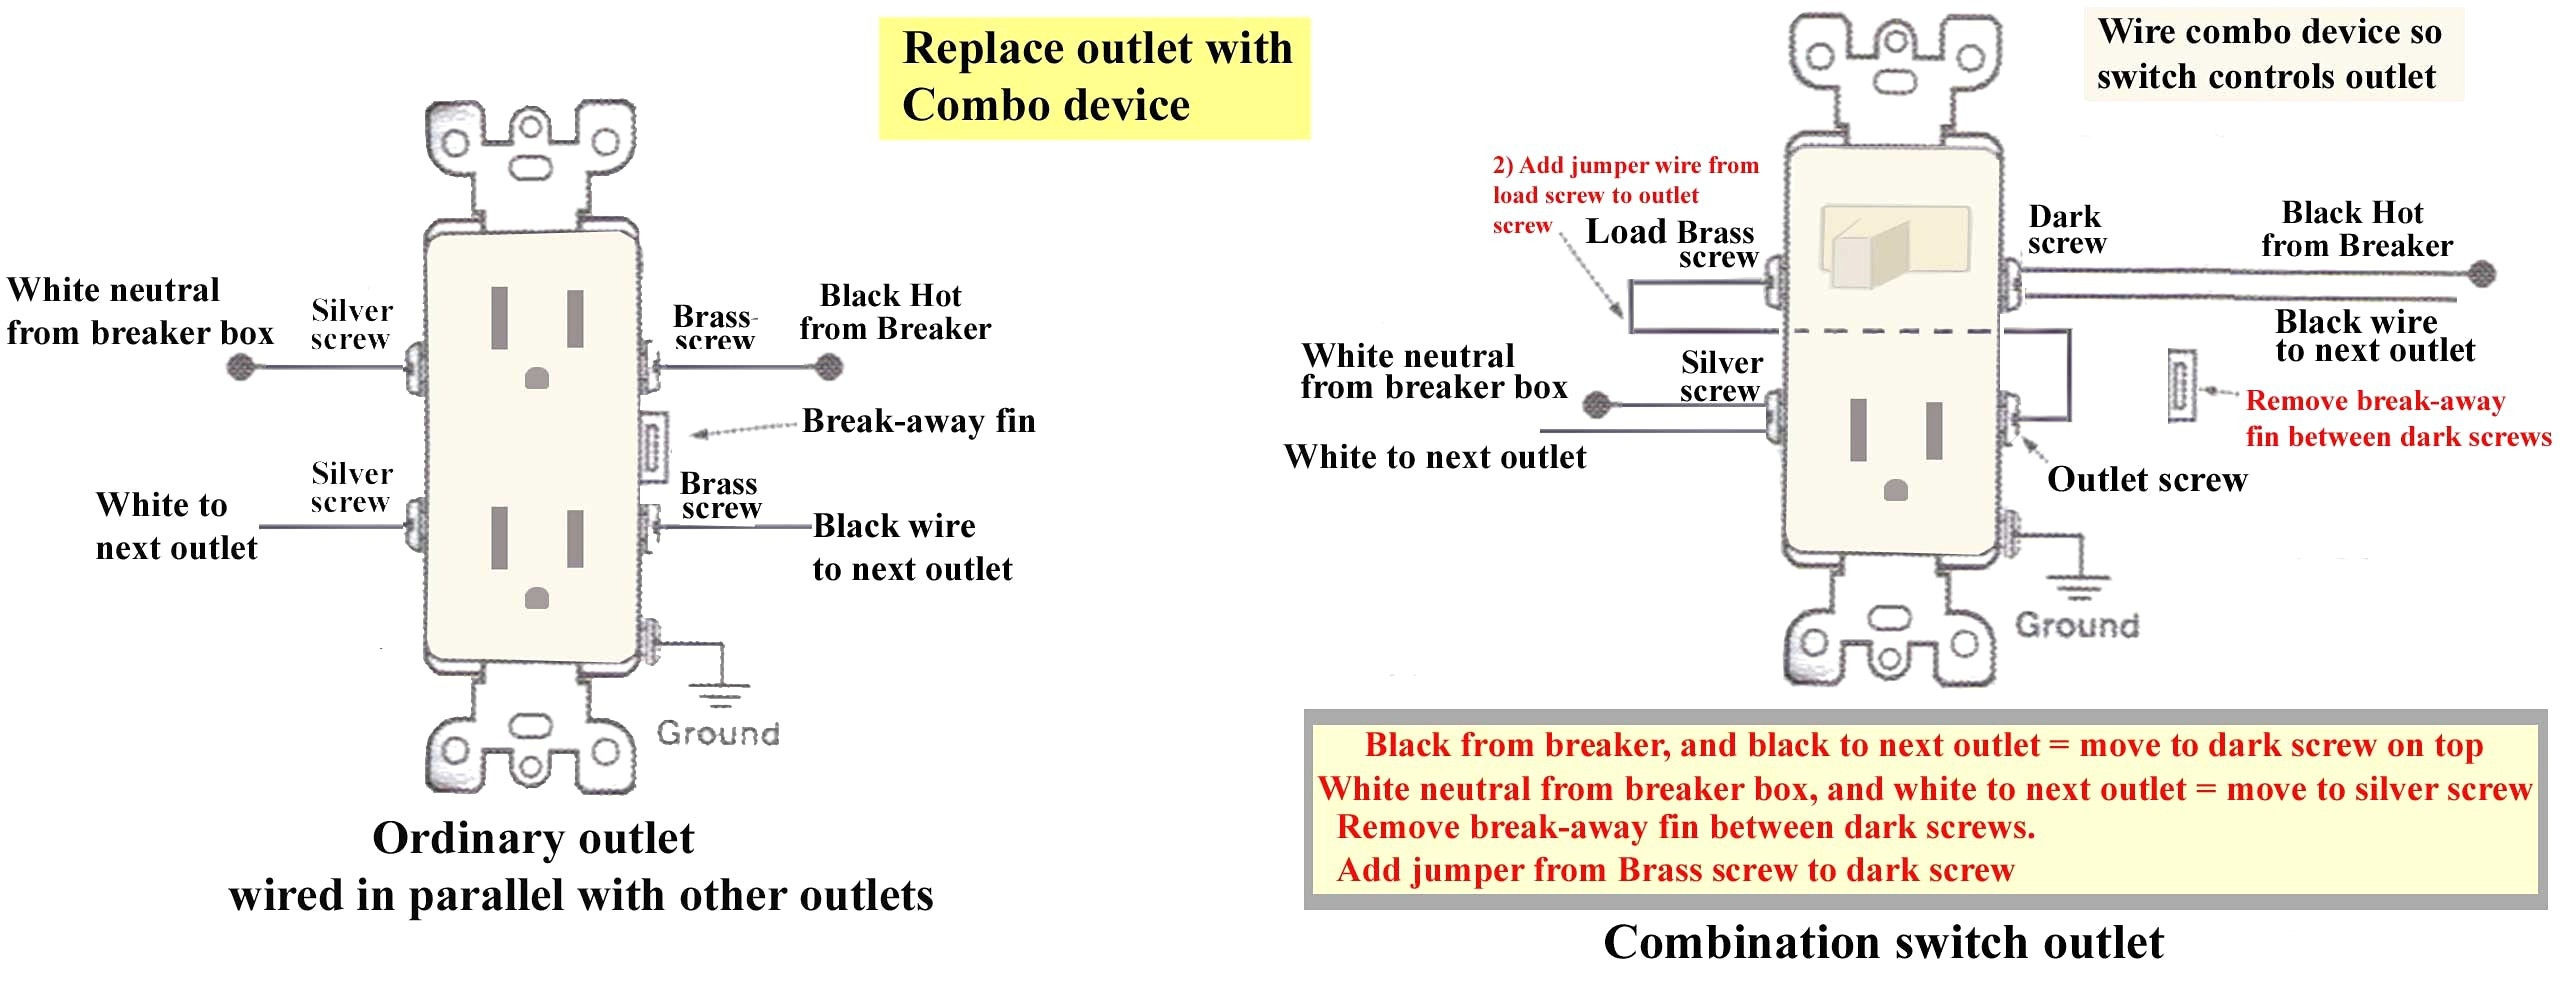 cooper gfci outlet wiring diagram